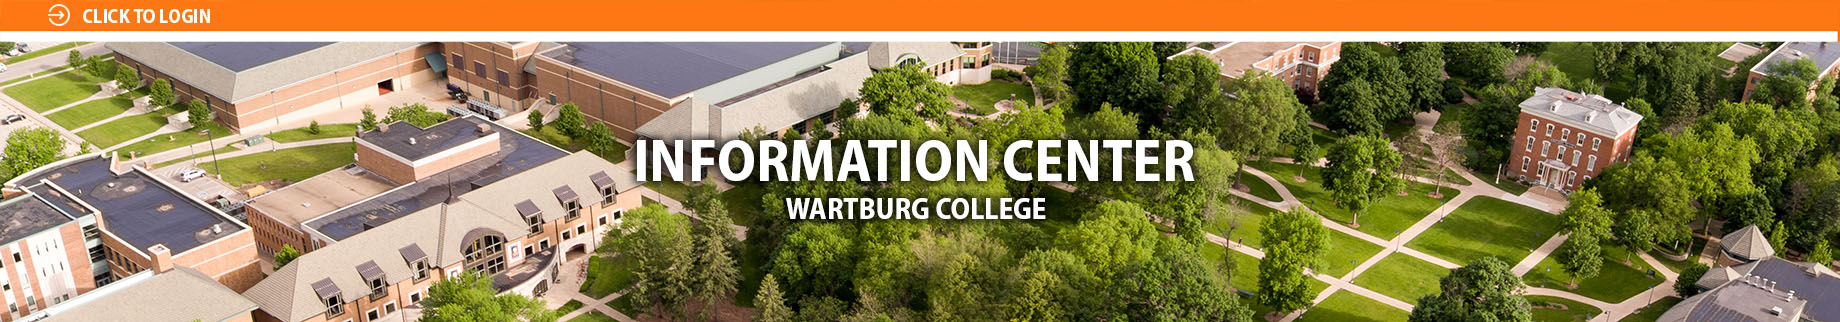 Information Center: Wartburg College Banner